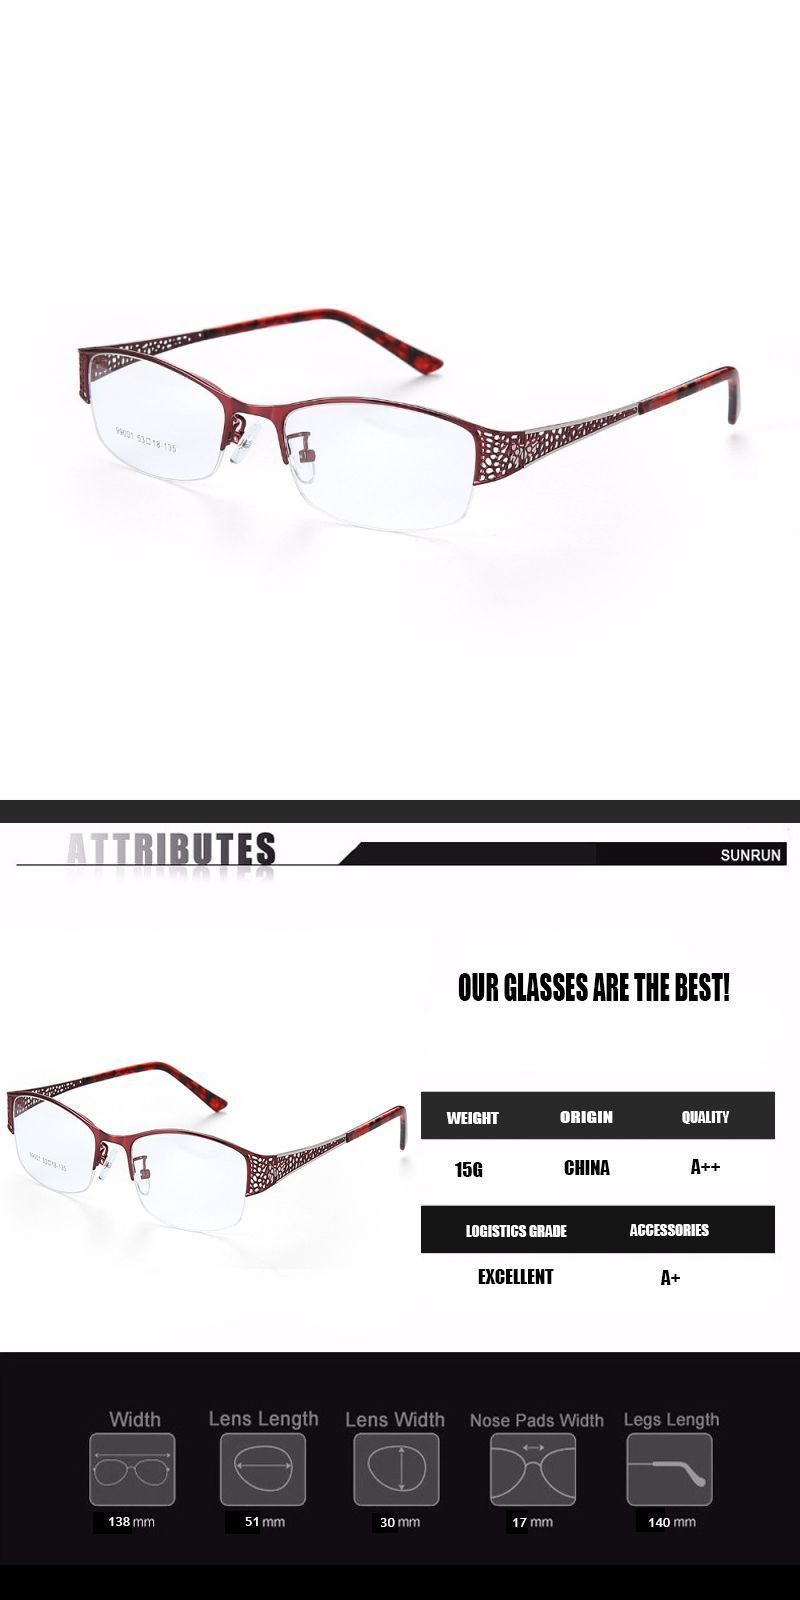 79af7aaded3 Eyeglasses frame women computer optical clear glasses myopia prescription  spectacle for women s transparent lens female rs043  eyewear  accessories   frames ...